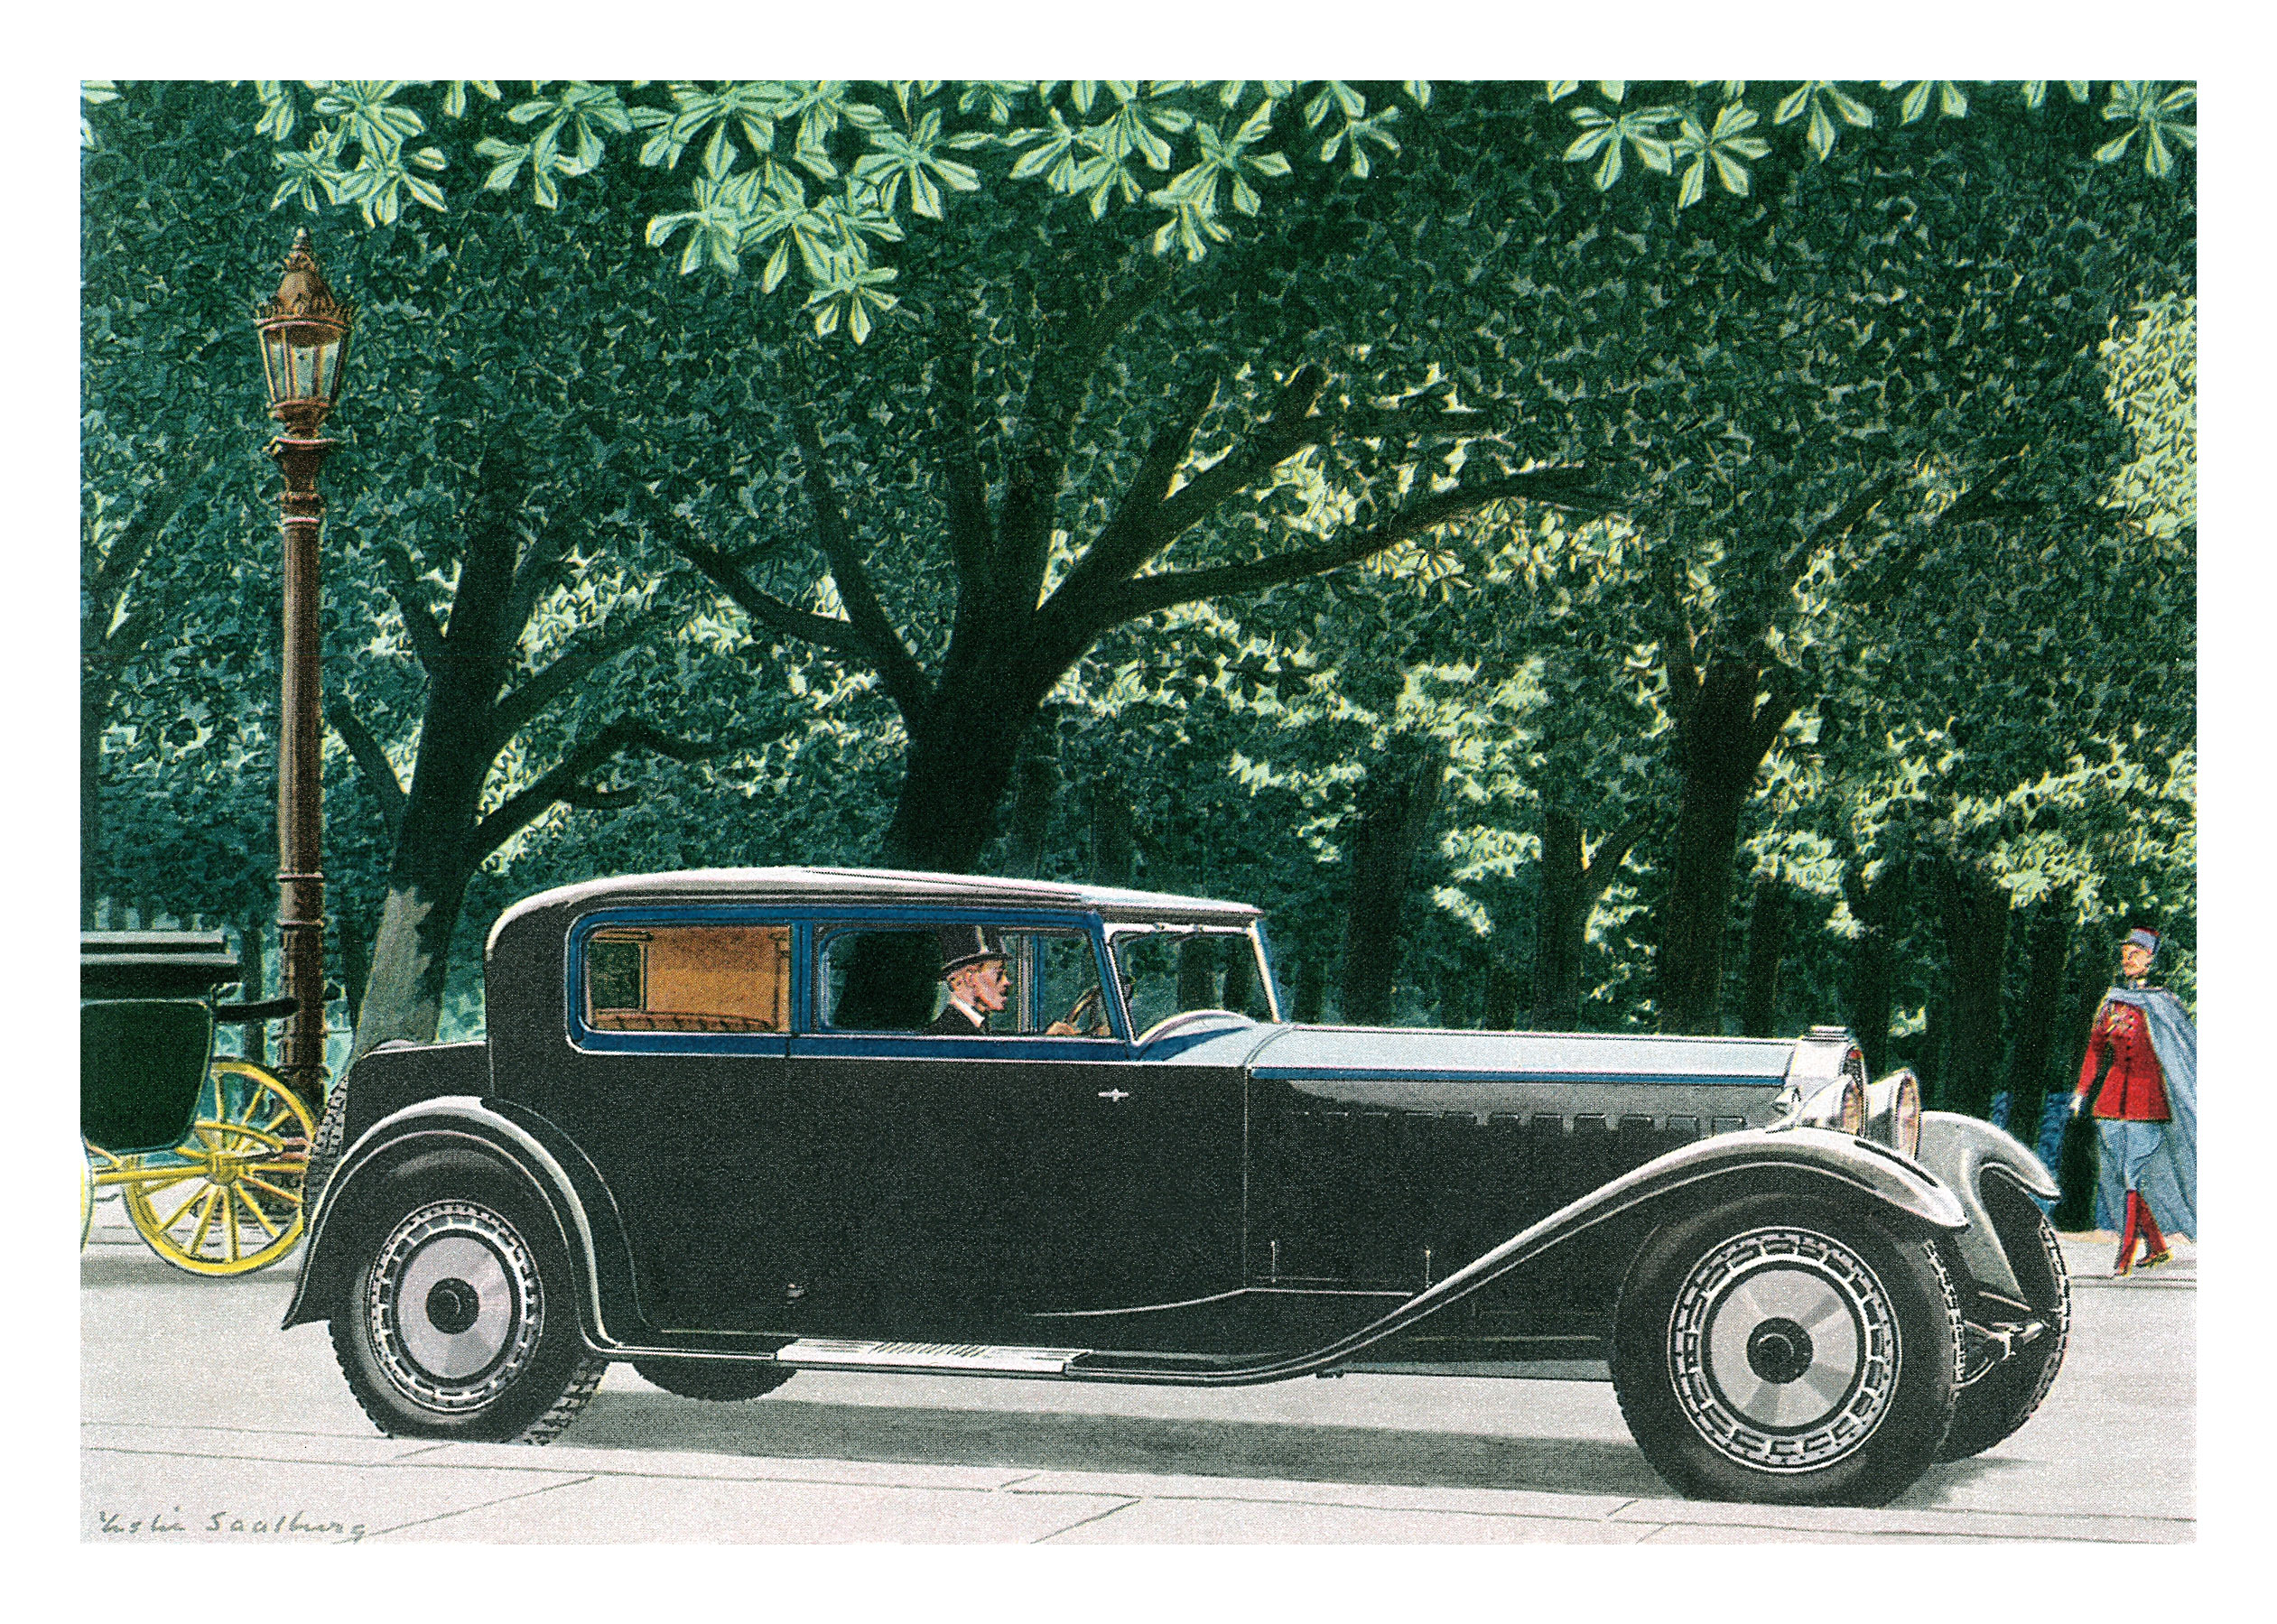 1928 Bugatti Type 41 Royale Coupe body by Kellner - Illustrated by Leslie Saalburg